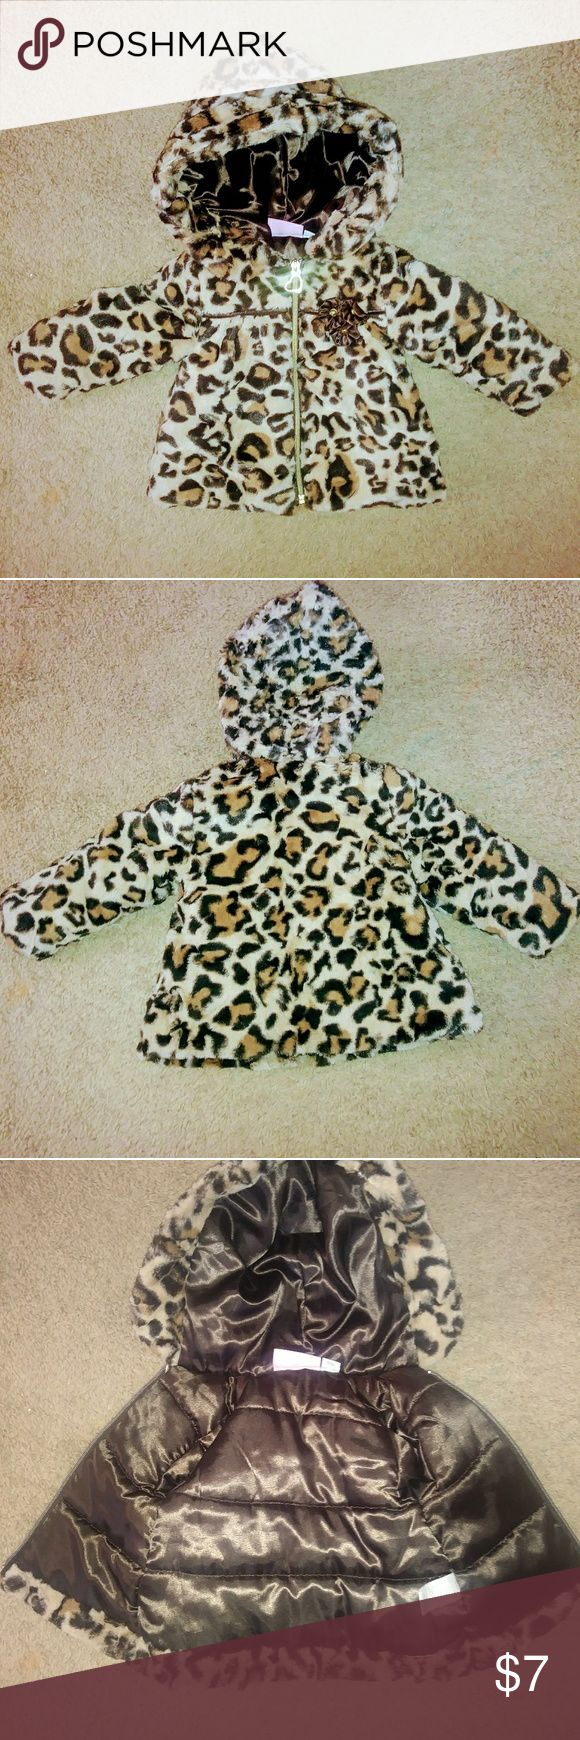 12M Leonard Print Coat 12- month; tan, brown, cream colored leopard-print coat; faux fur on outside; brown satin lining; zipper front; brown satin flowers left breast pocket area; attached hood; worn twice; Pistachio brand & Other Stories Jackets & Coats